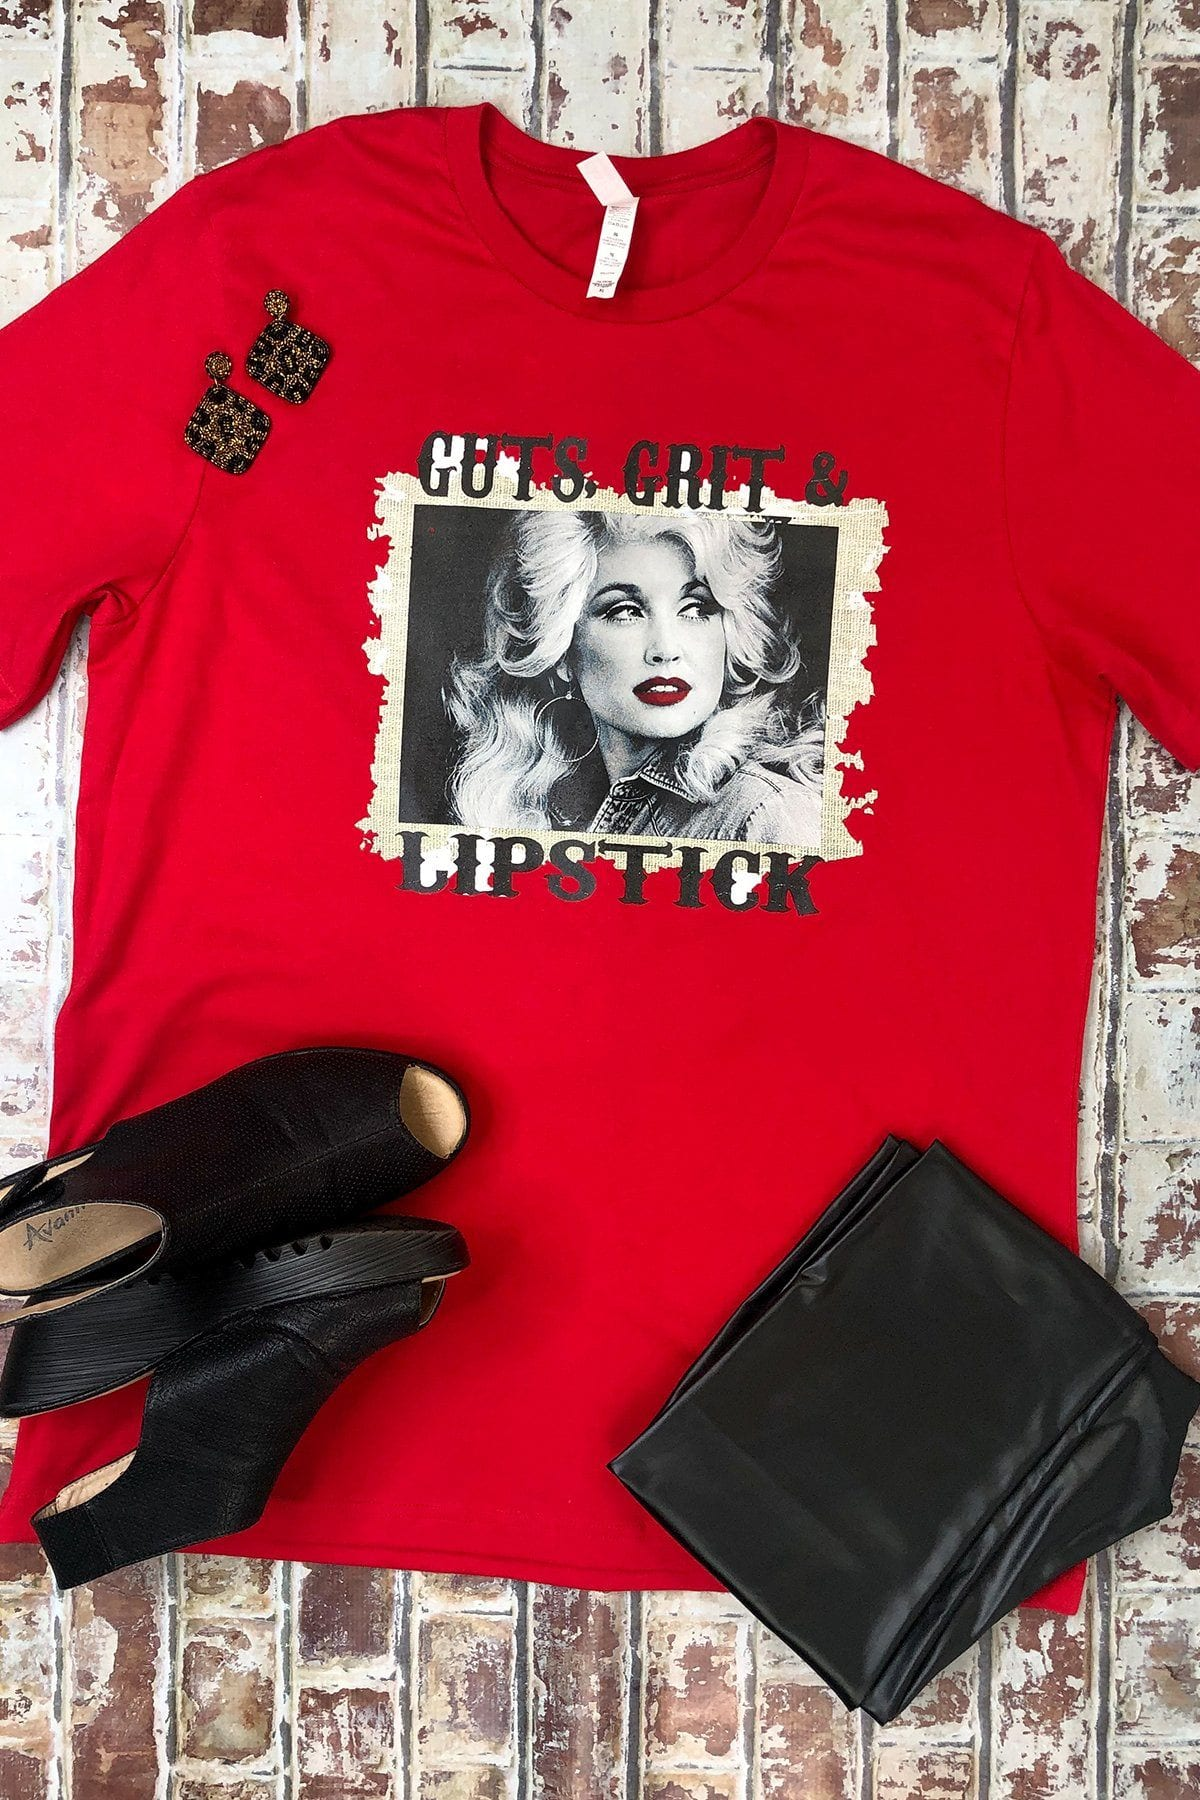 Dolly & Lipstick Graphic Tee graphic tees Mark tee